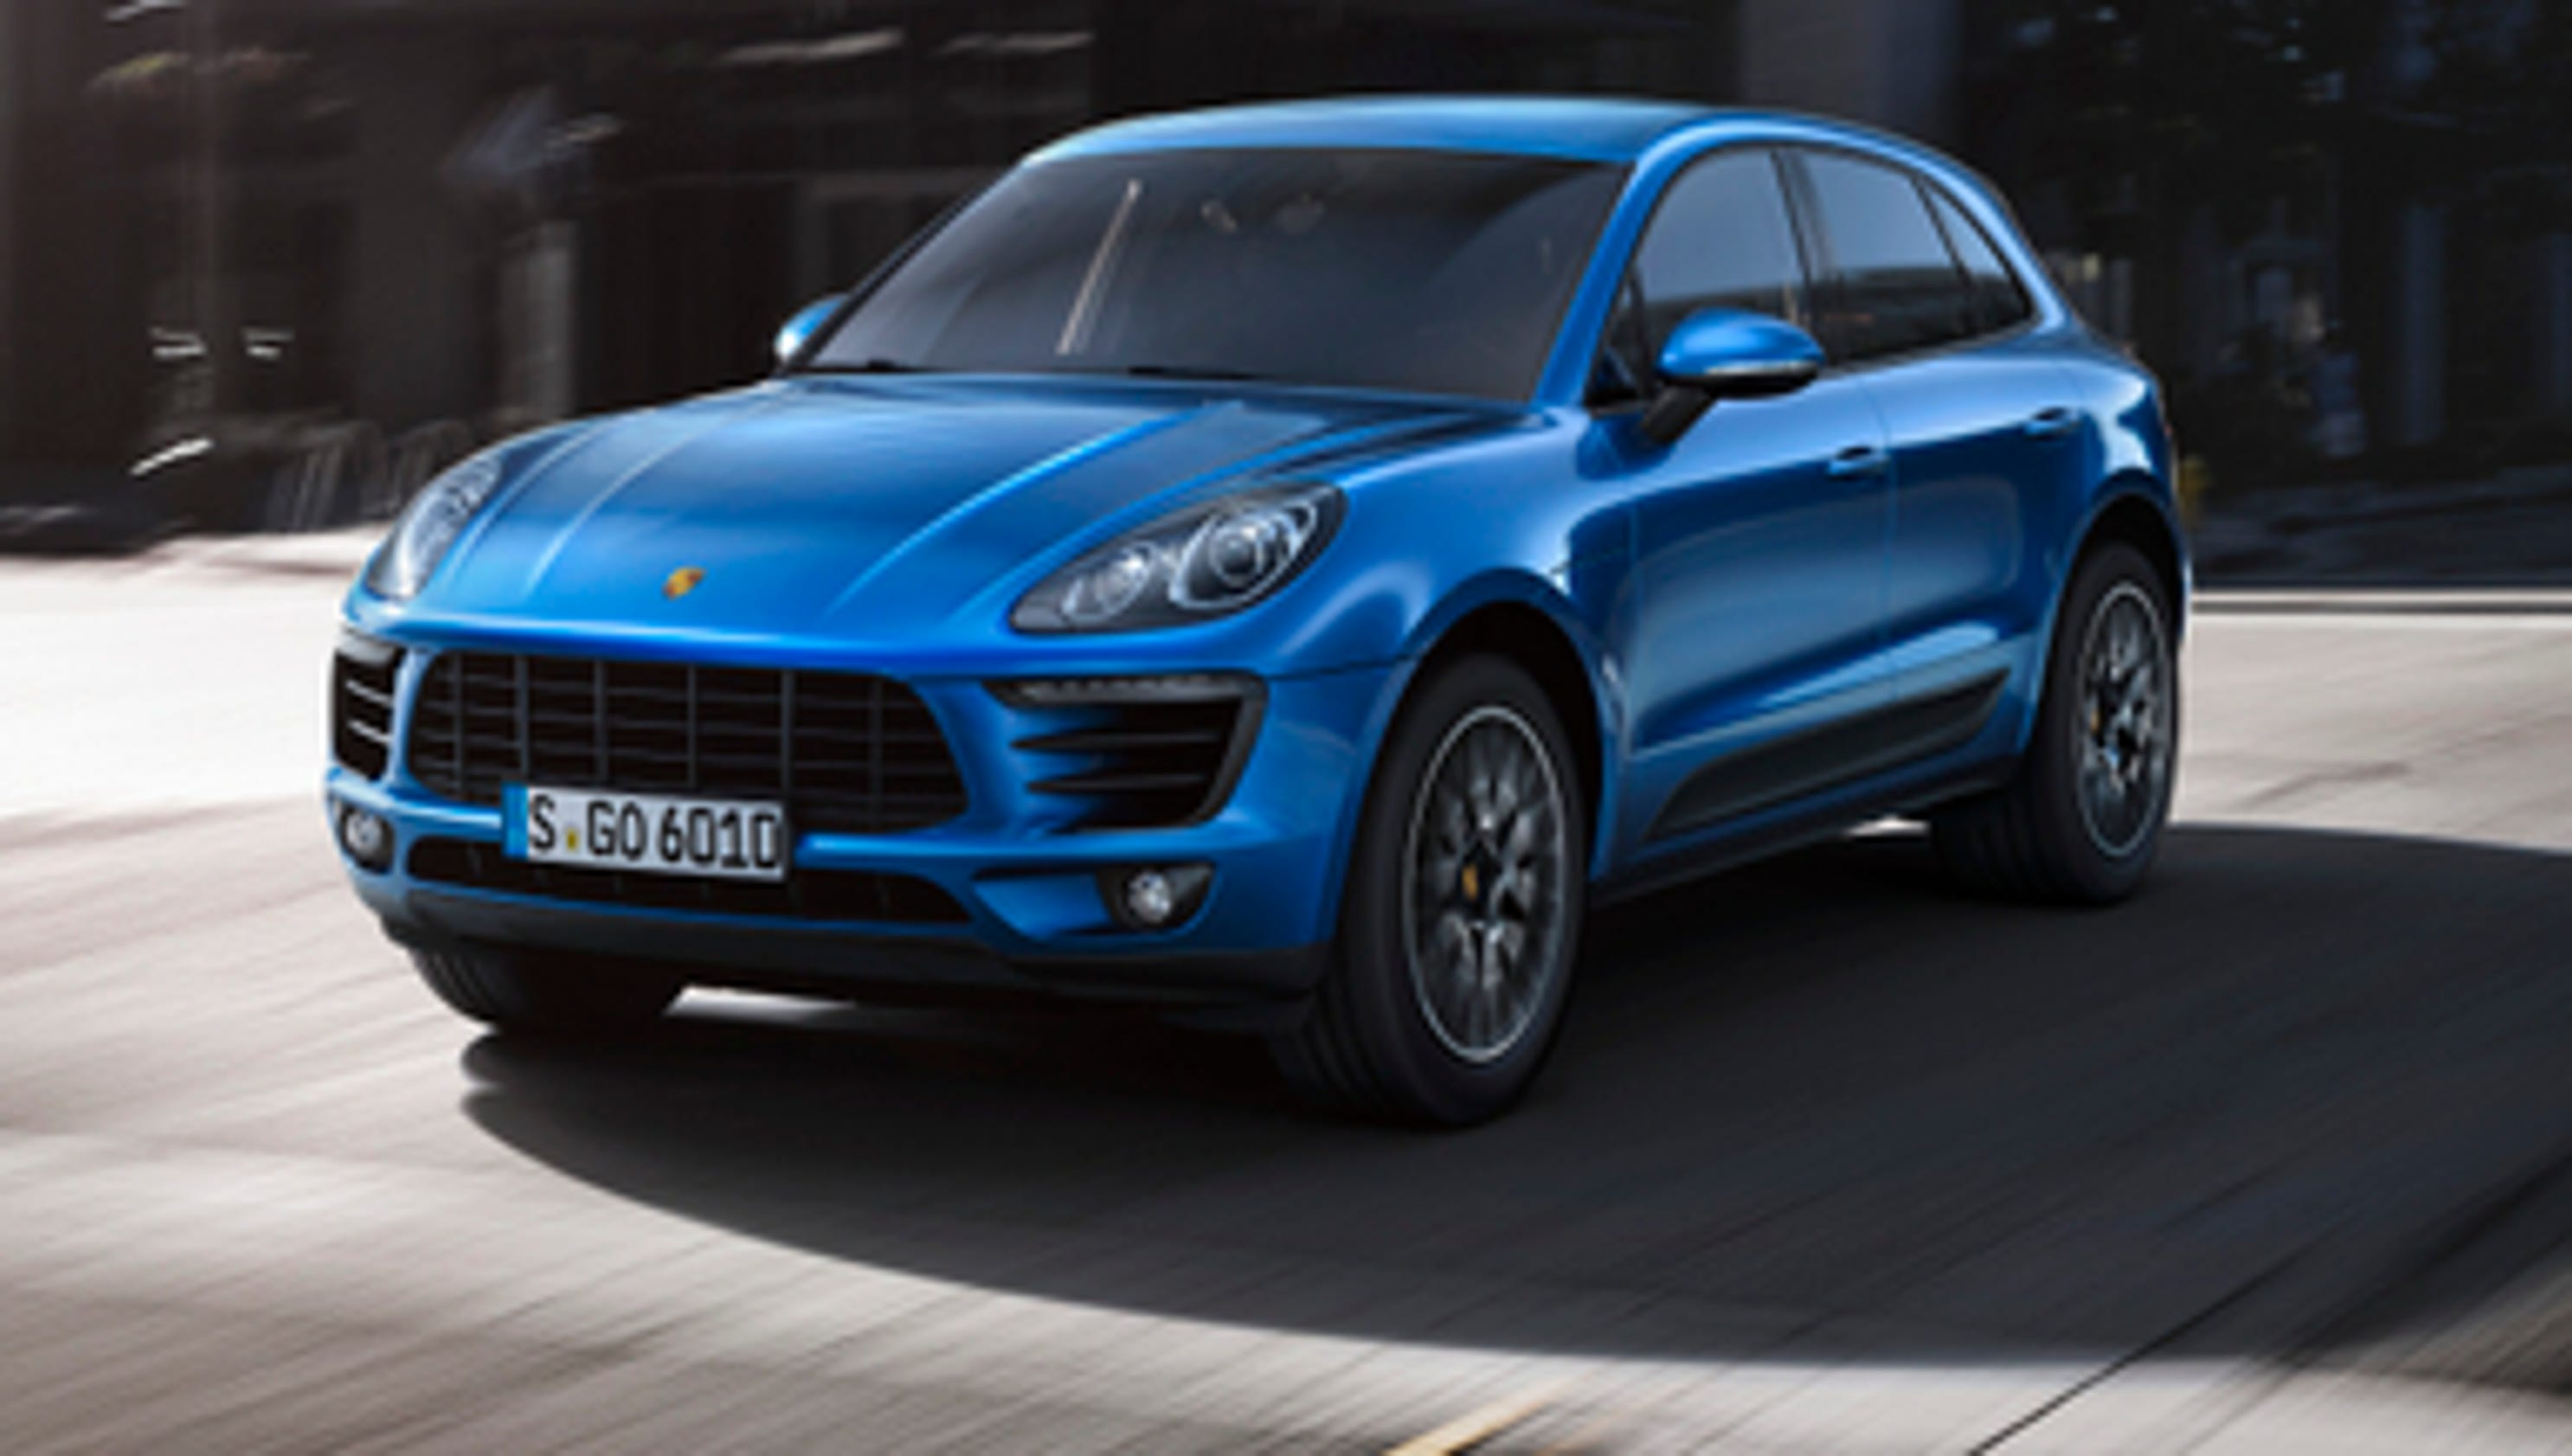 Best Suv For The Money >> The new Porsche Macan compact crossover SUV